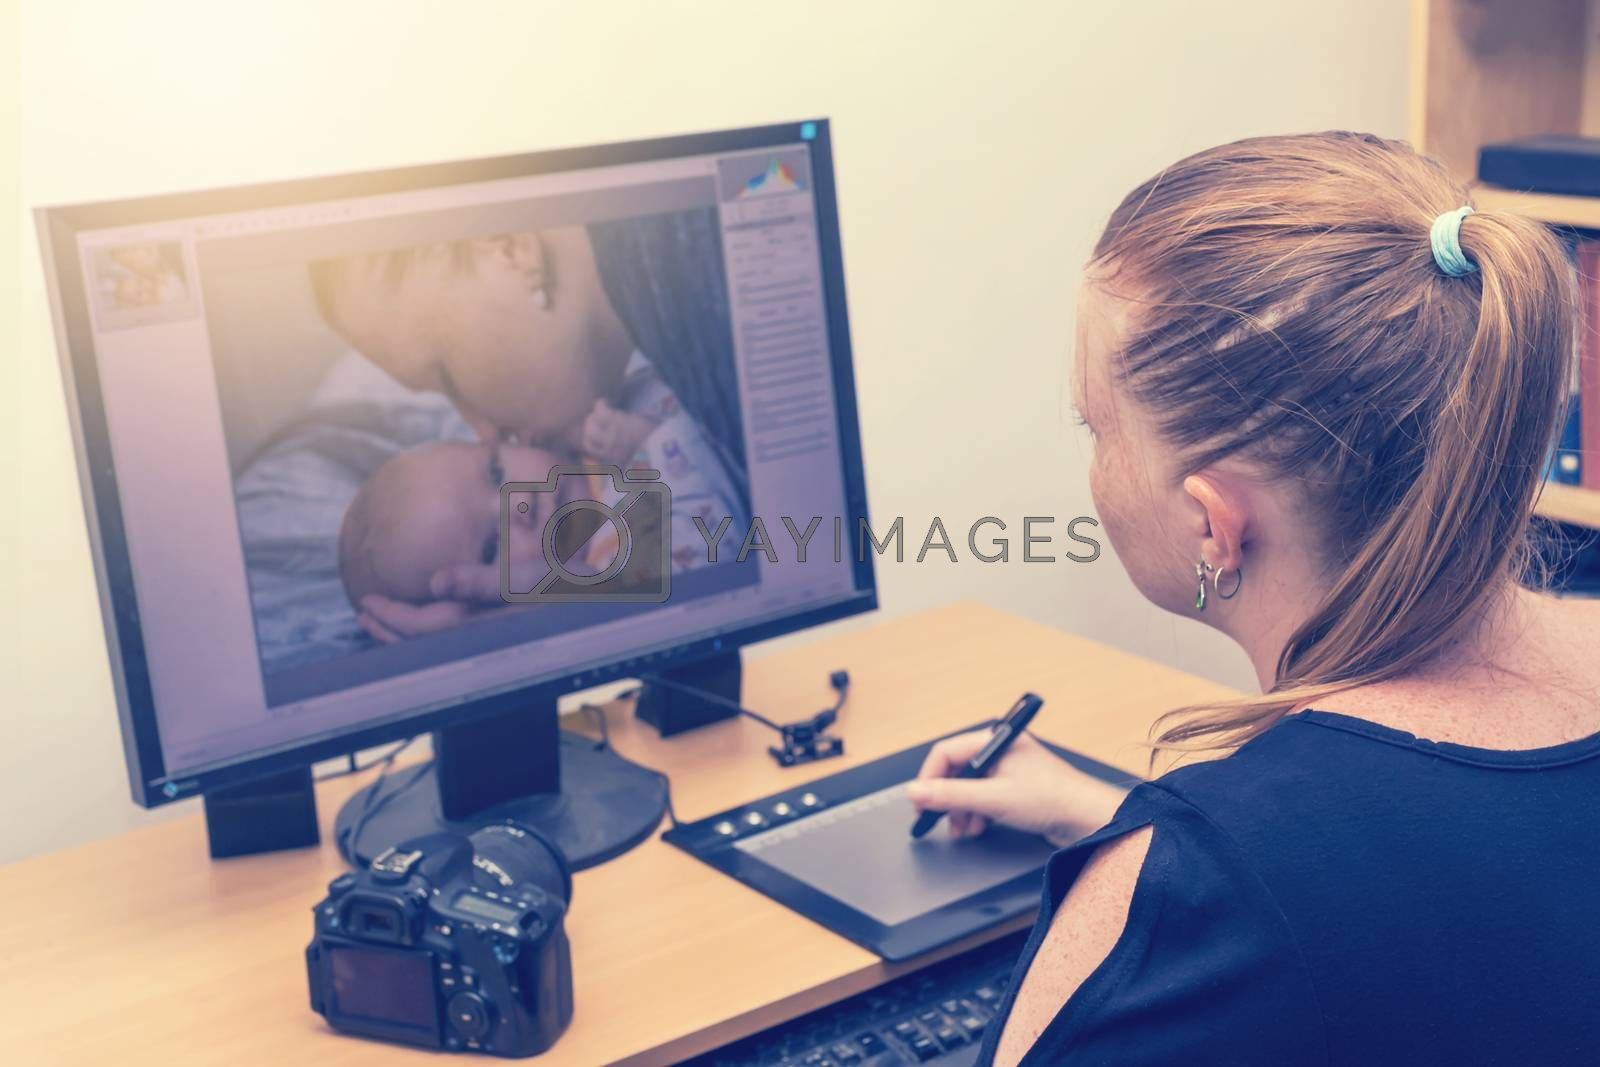 Young woman is editing photos by a graphics tablet and graphics software. Photo of kissing mother of her baby is on computer monitor in front of her. All potential trademarks are removed.